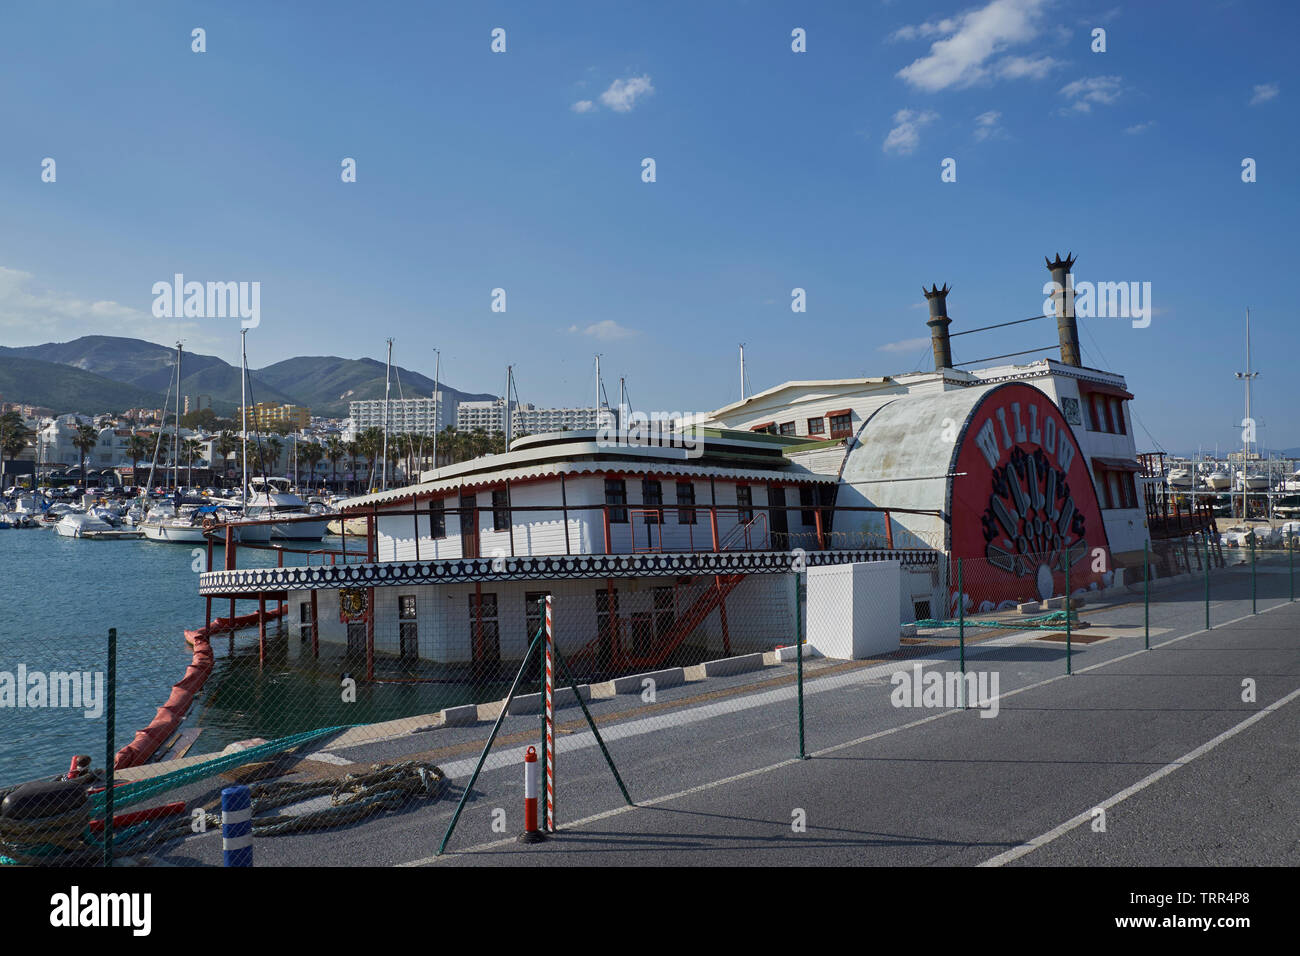 """The Mississippi Steam Boat """"Willow"""" half sunken, tied up at the Marina Benalmádena Puerto. Port. Andalusia, Spain. Stock Photo"""